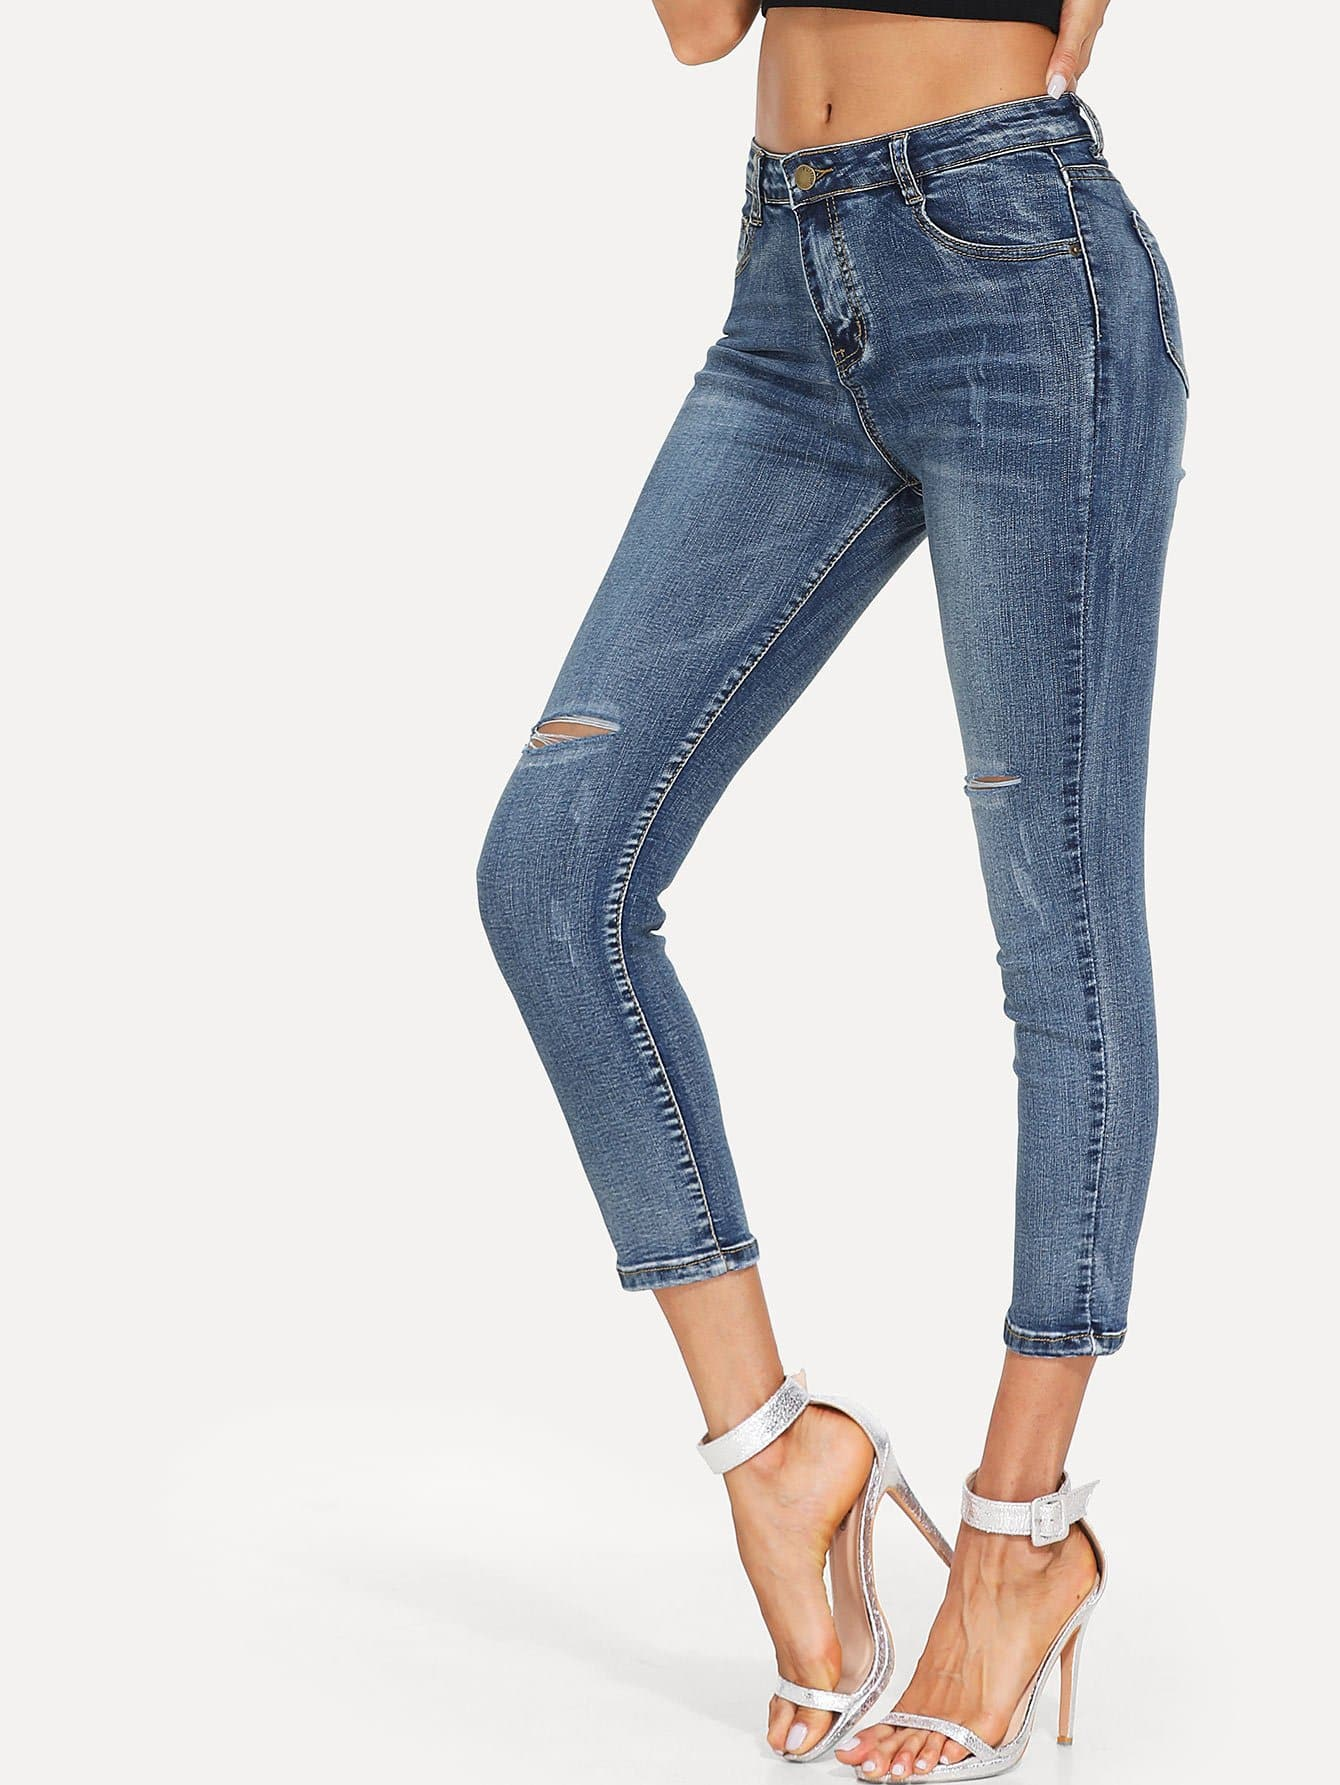 You Heard Right: Bell-Bottom Jeans Are Officially Back Who What Wear 67